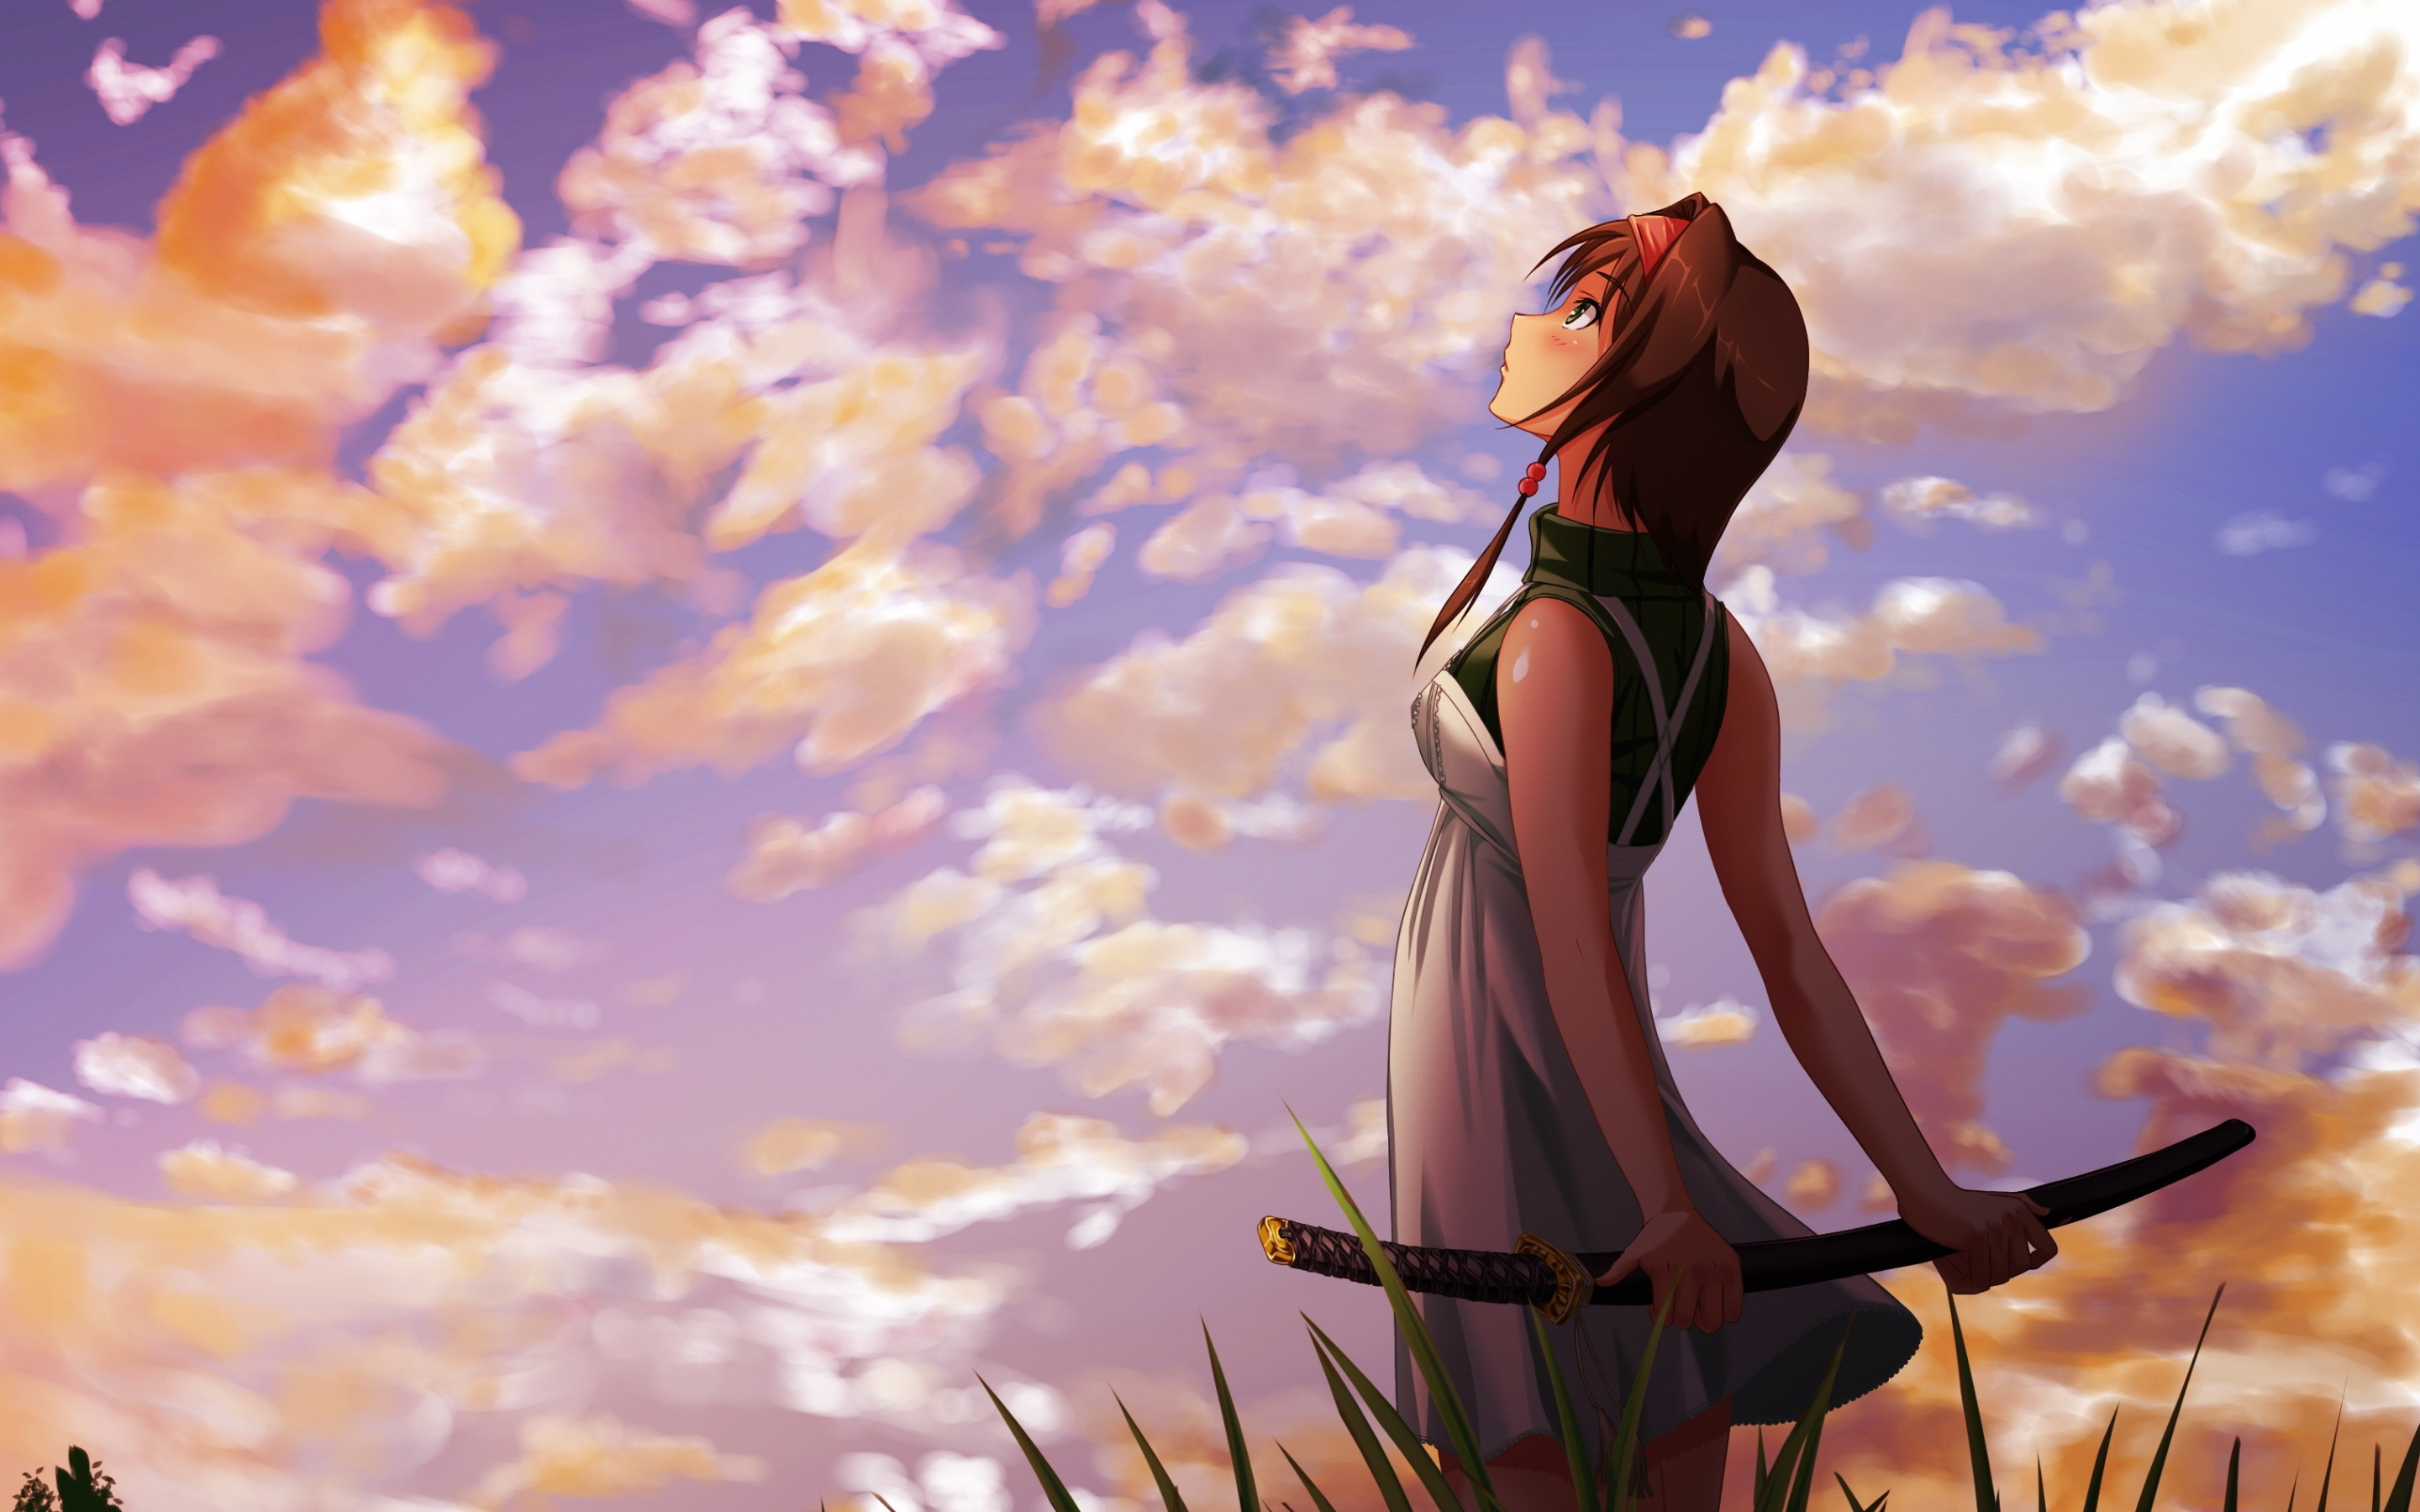 Anime girl wallpapers 83 background pictures - Anime girl full hd ...